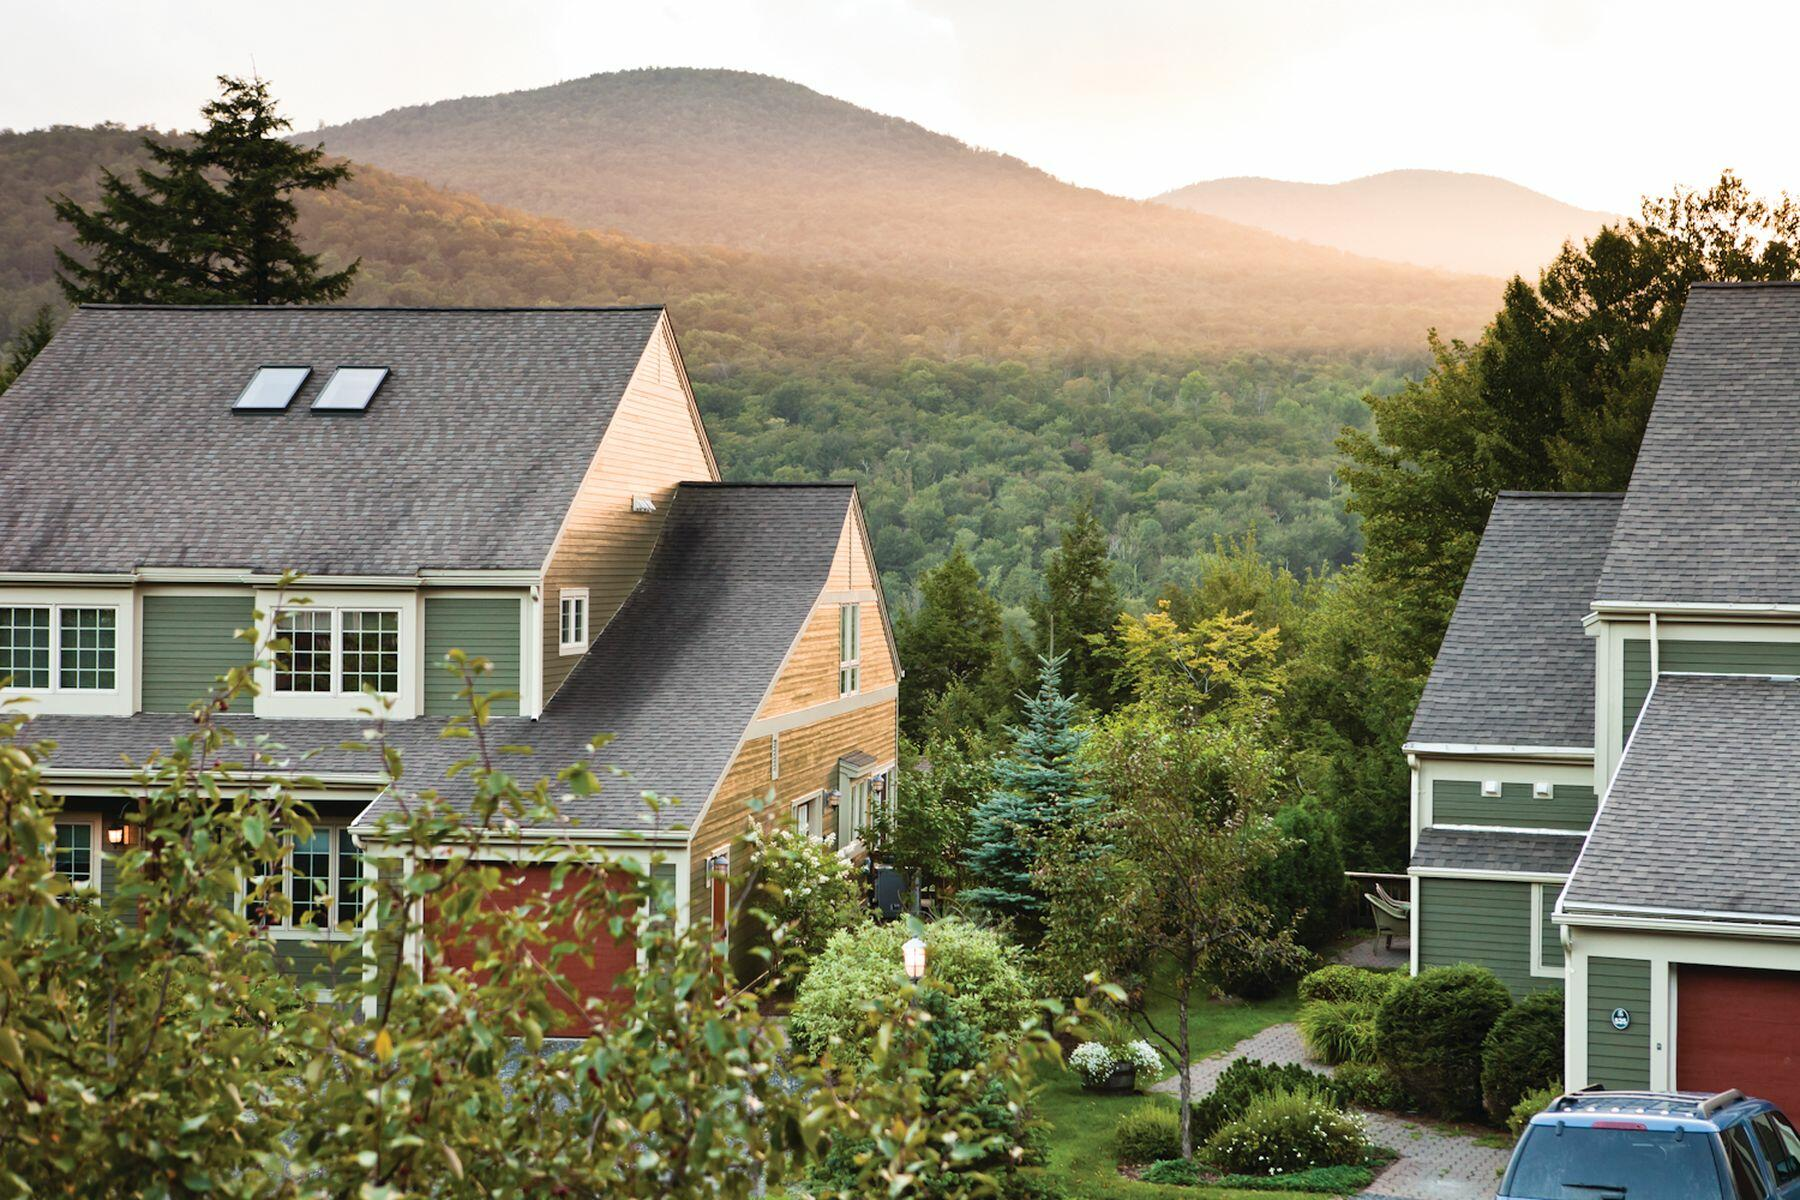 Cottage in the Vermont mountains.